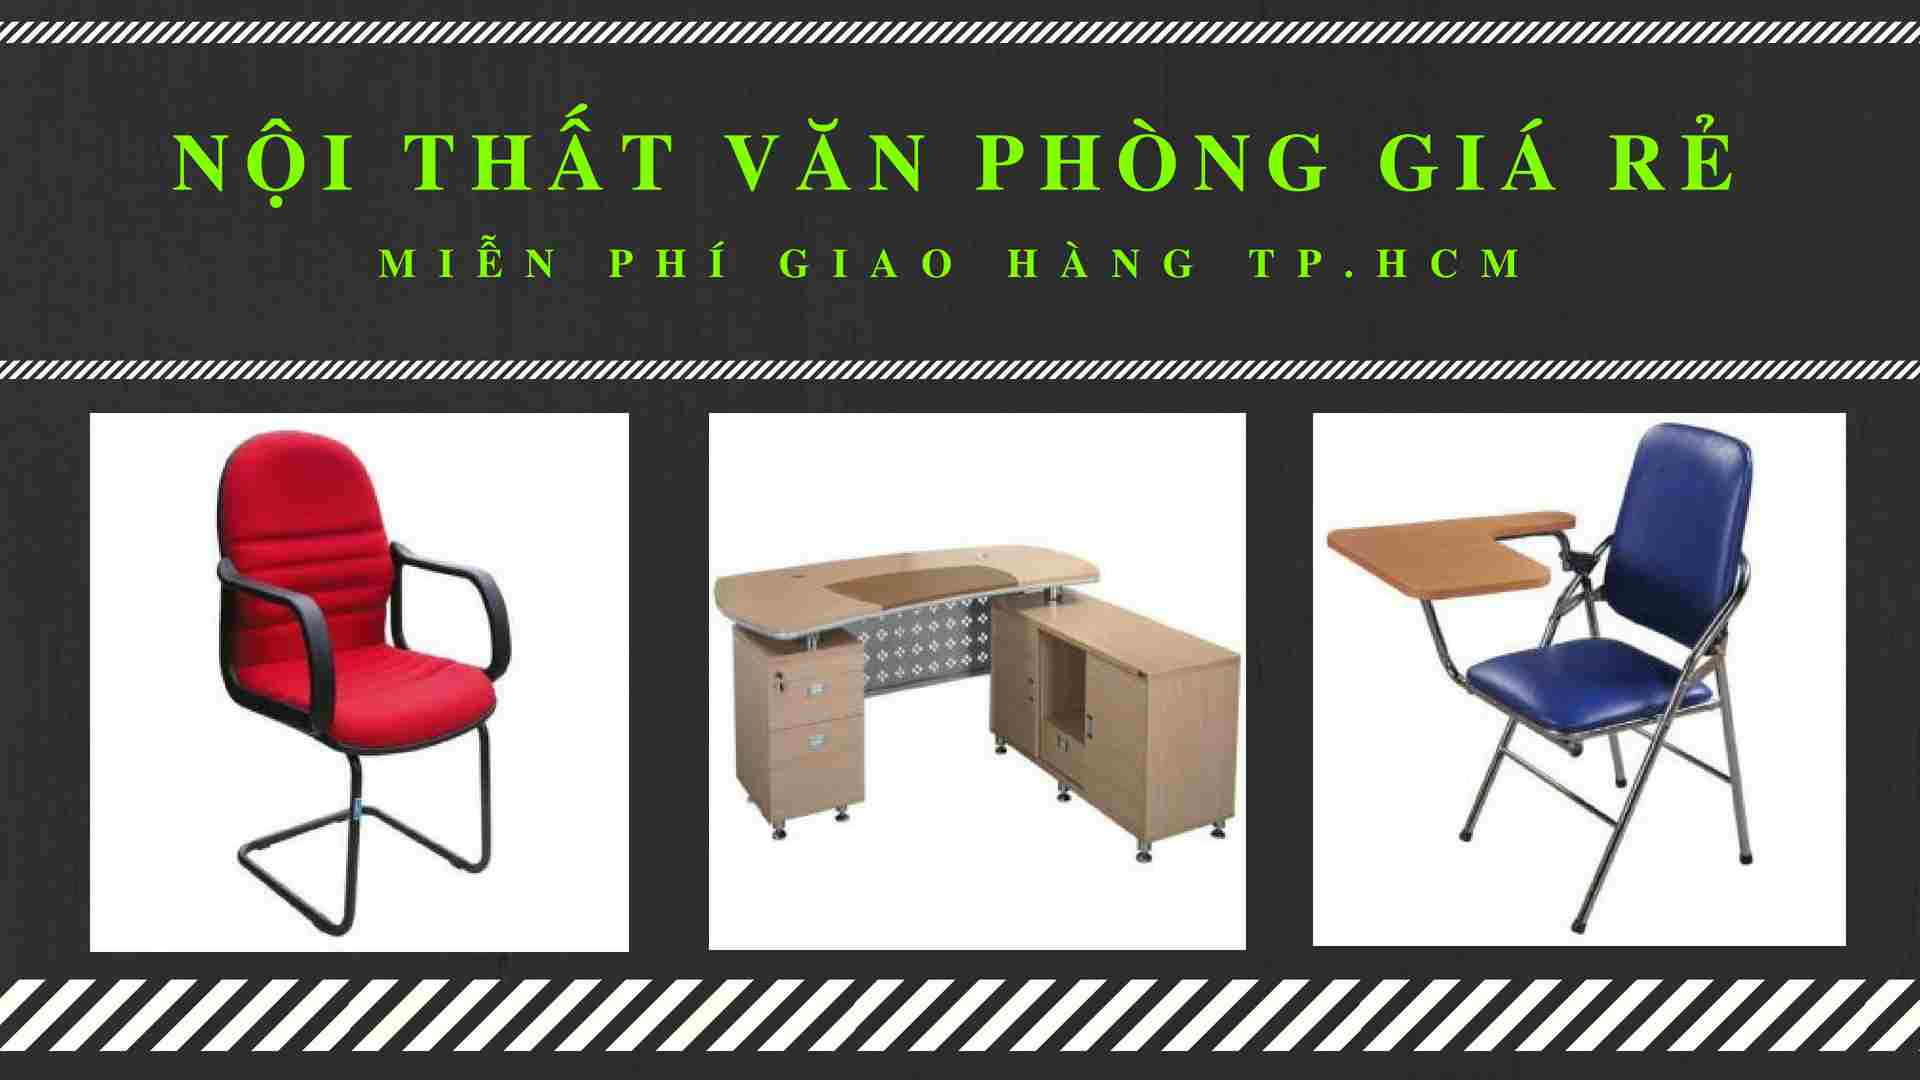 noi-that-van-phong